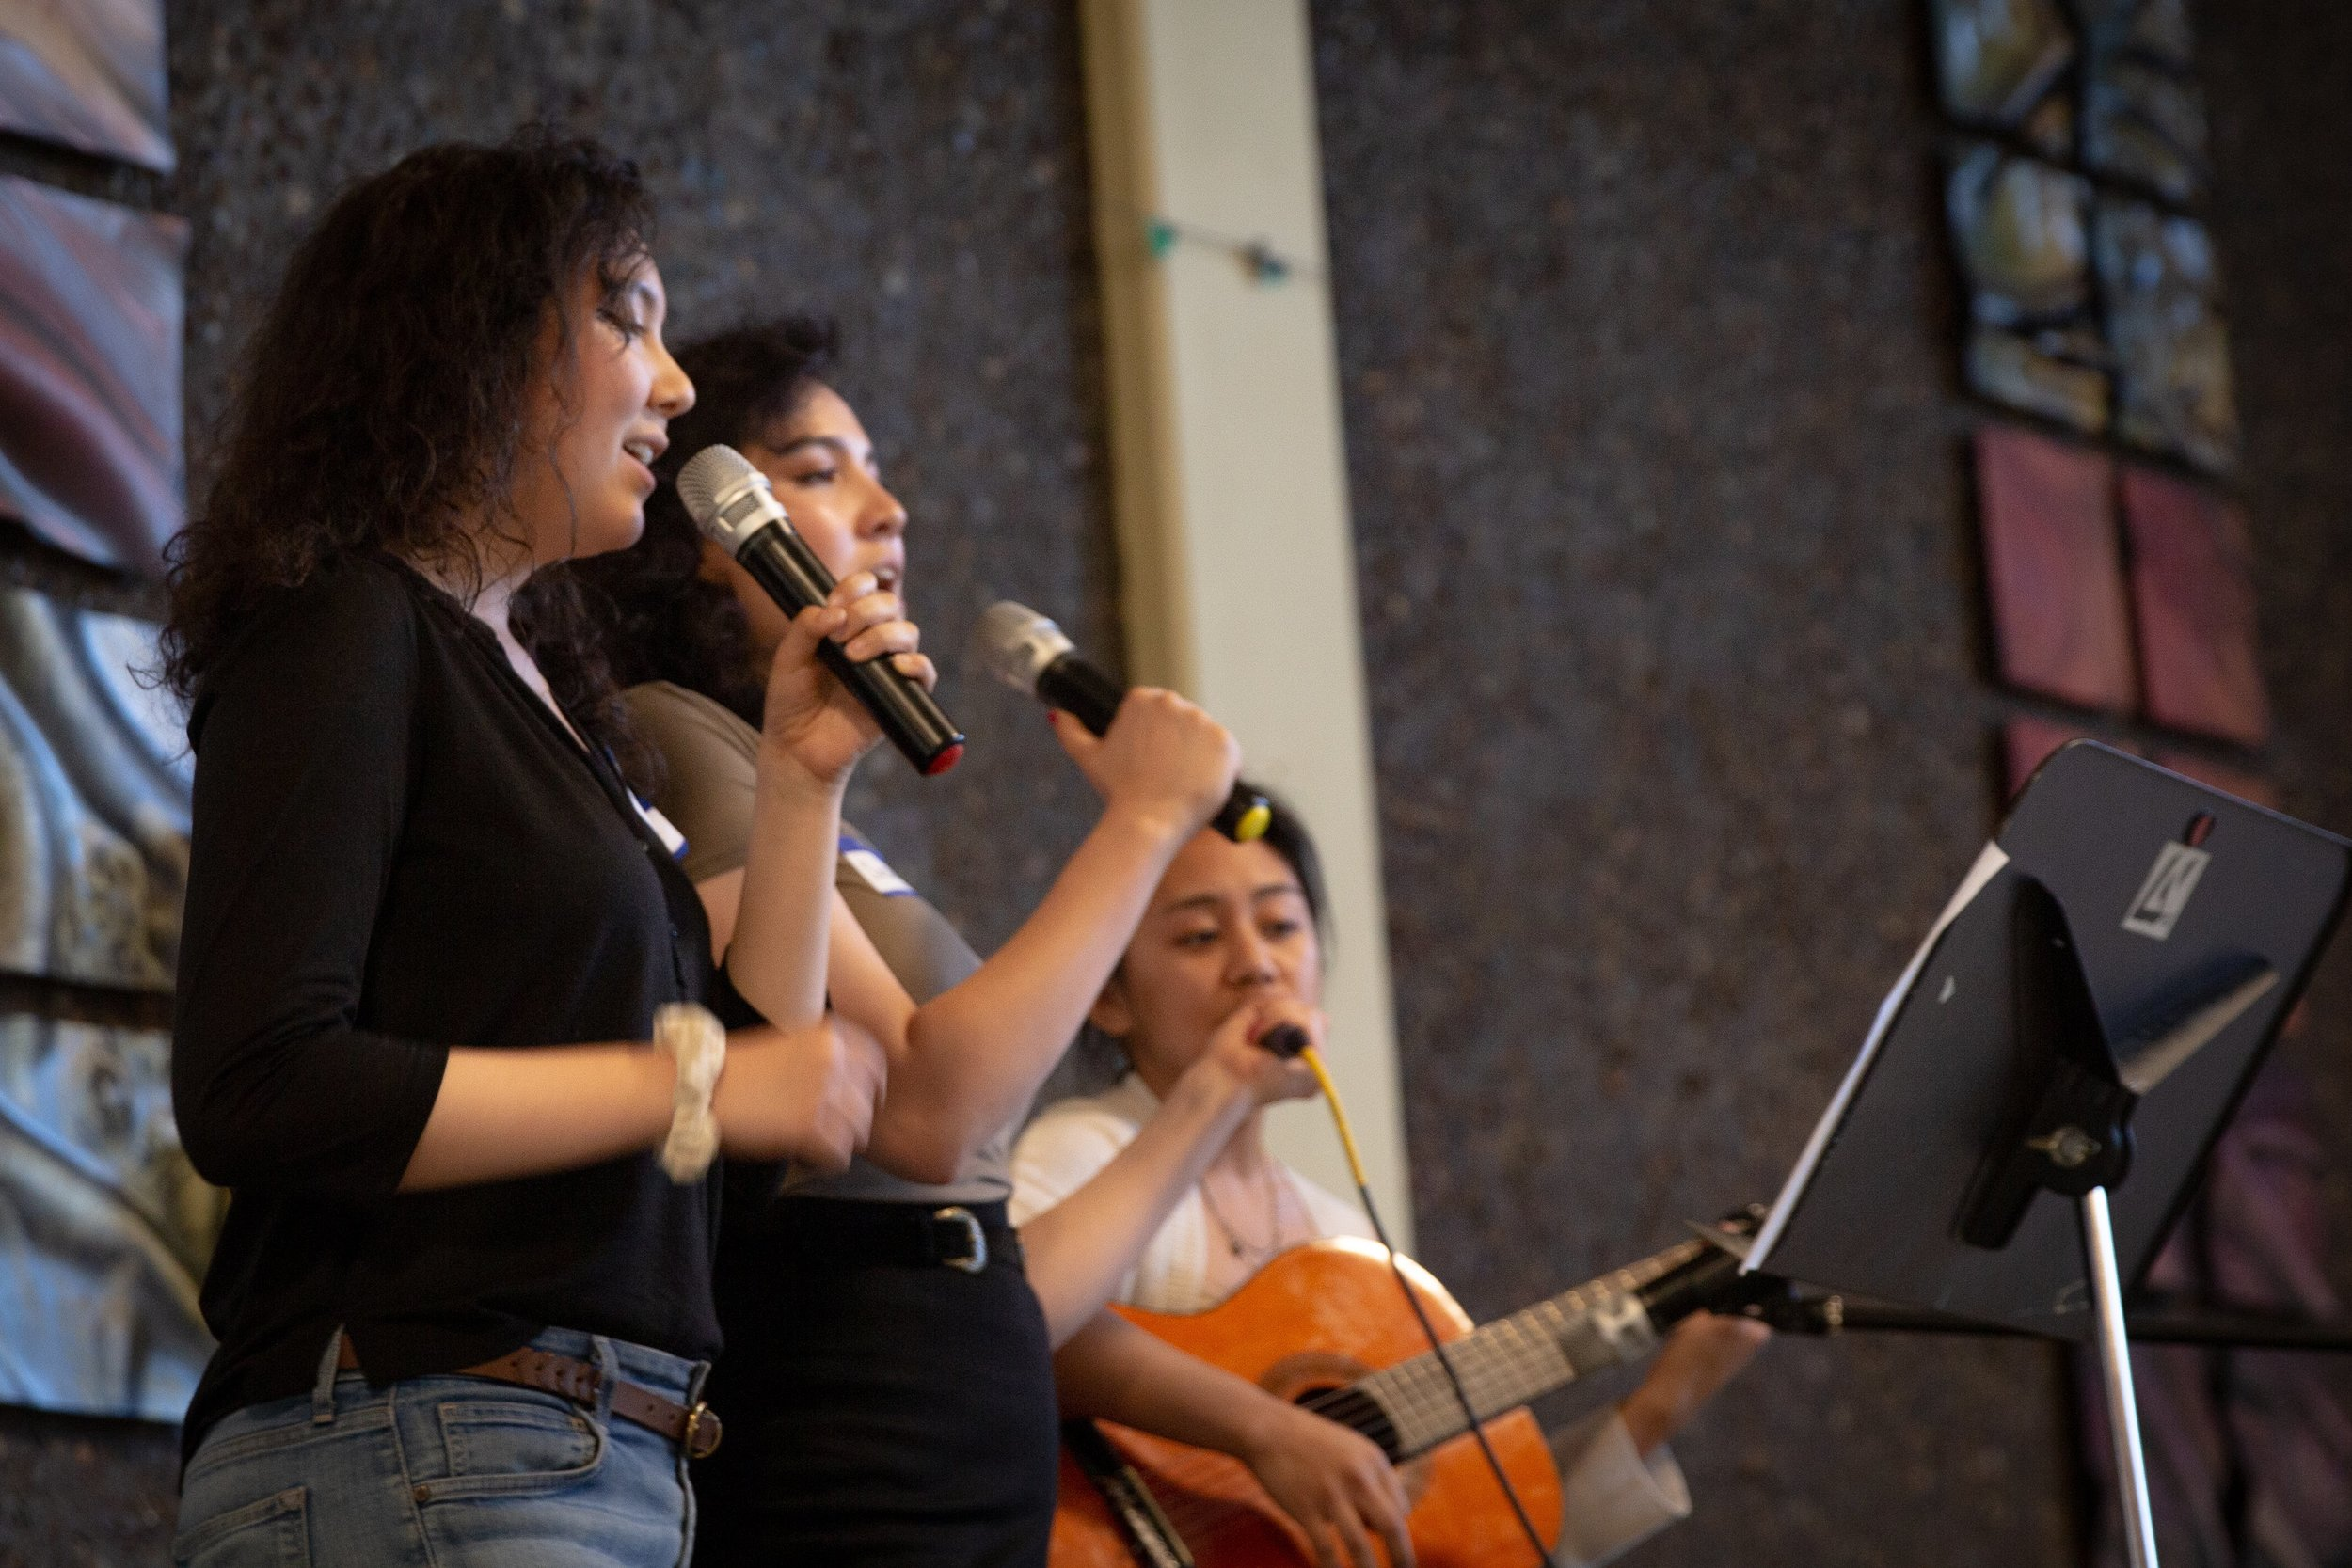 Amaris Durst (front), Sasha Durst (middle), and Geryln Quilates (back) sing for the crowd.